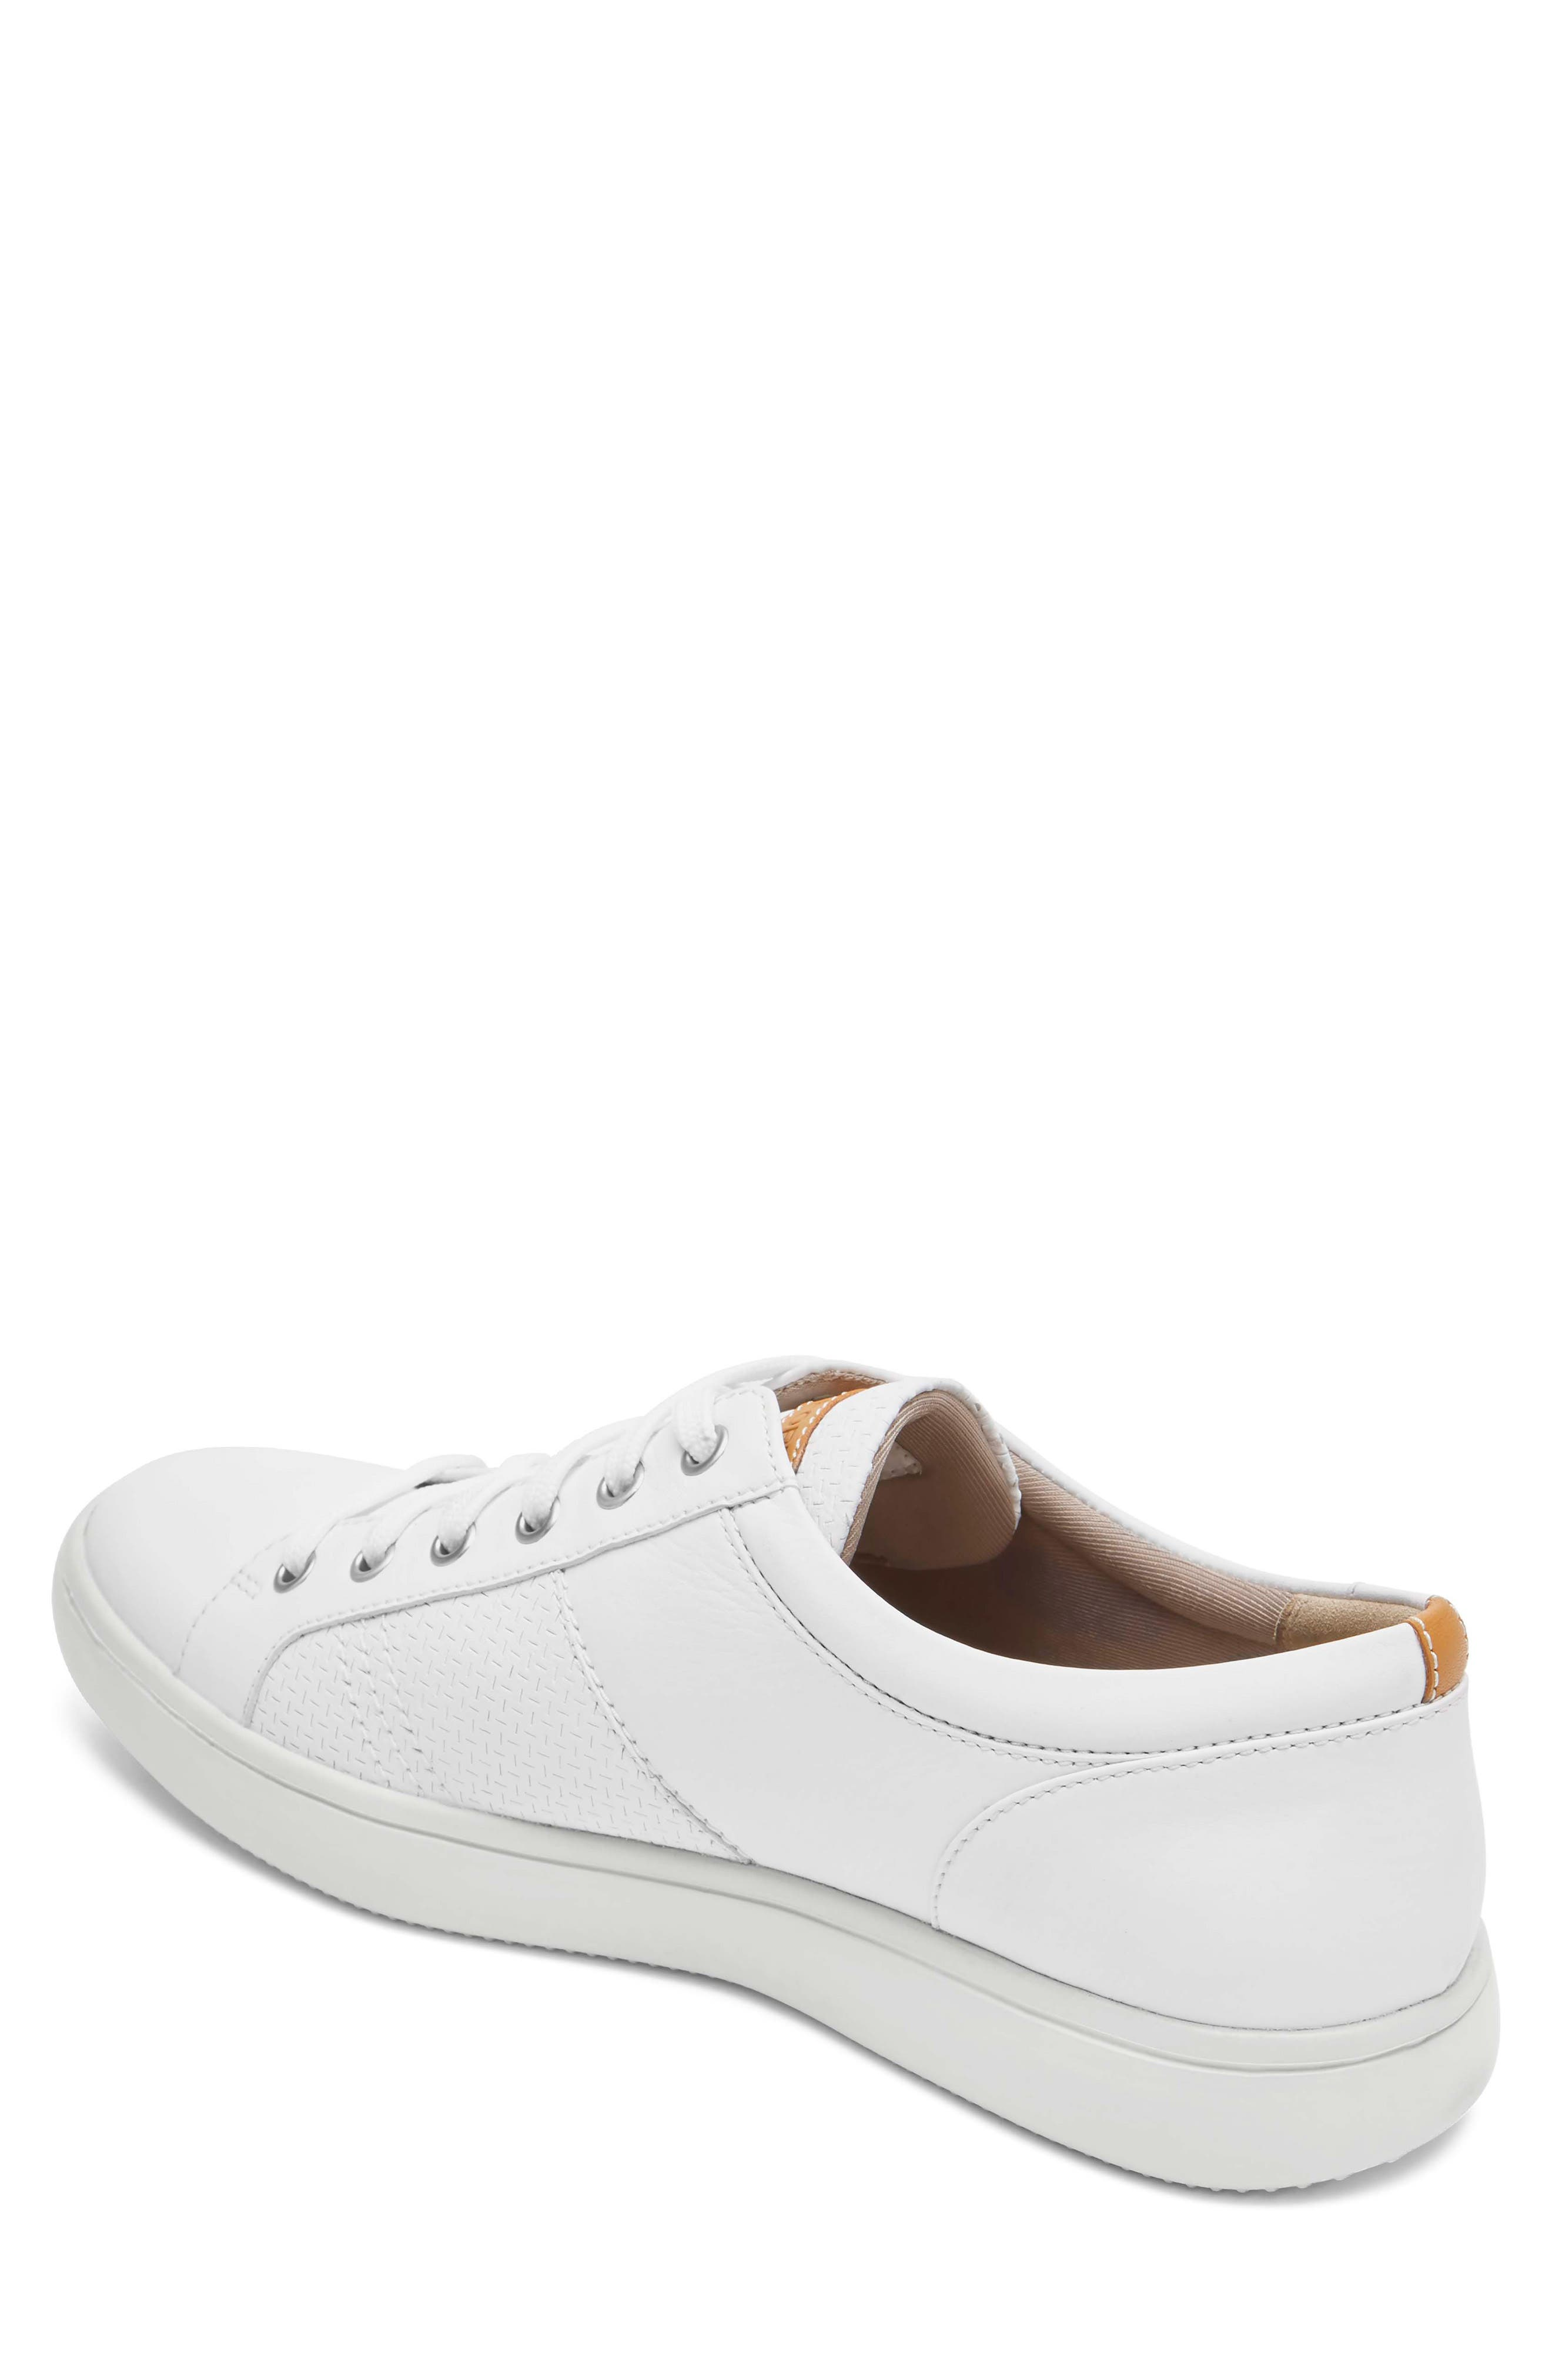 College Textured Sneaker,                             Alternate thumbnail 2, color,                             WHITE LEATHER